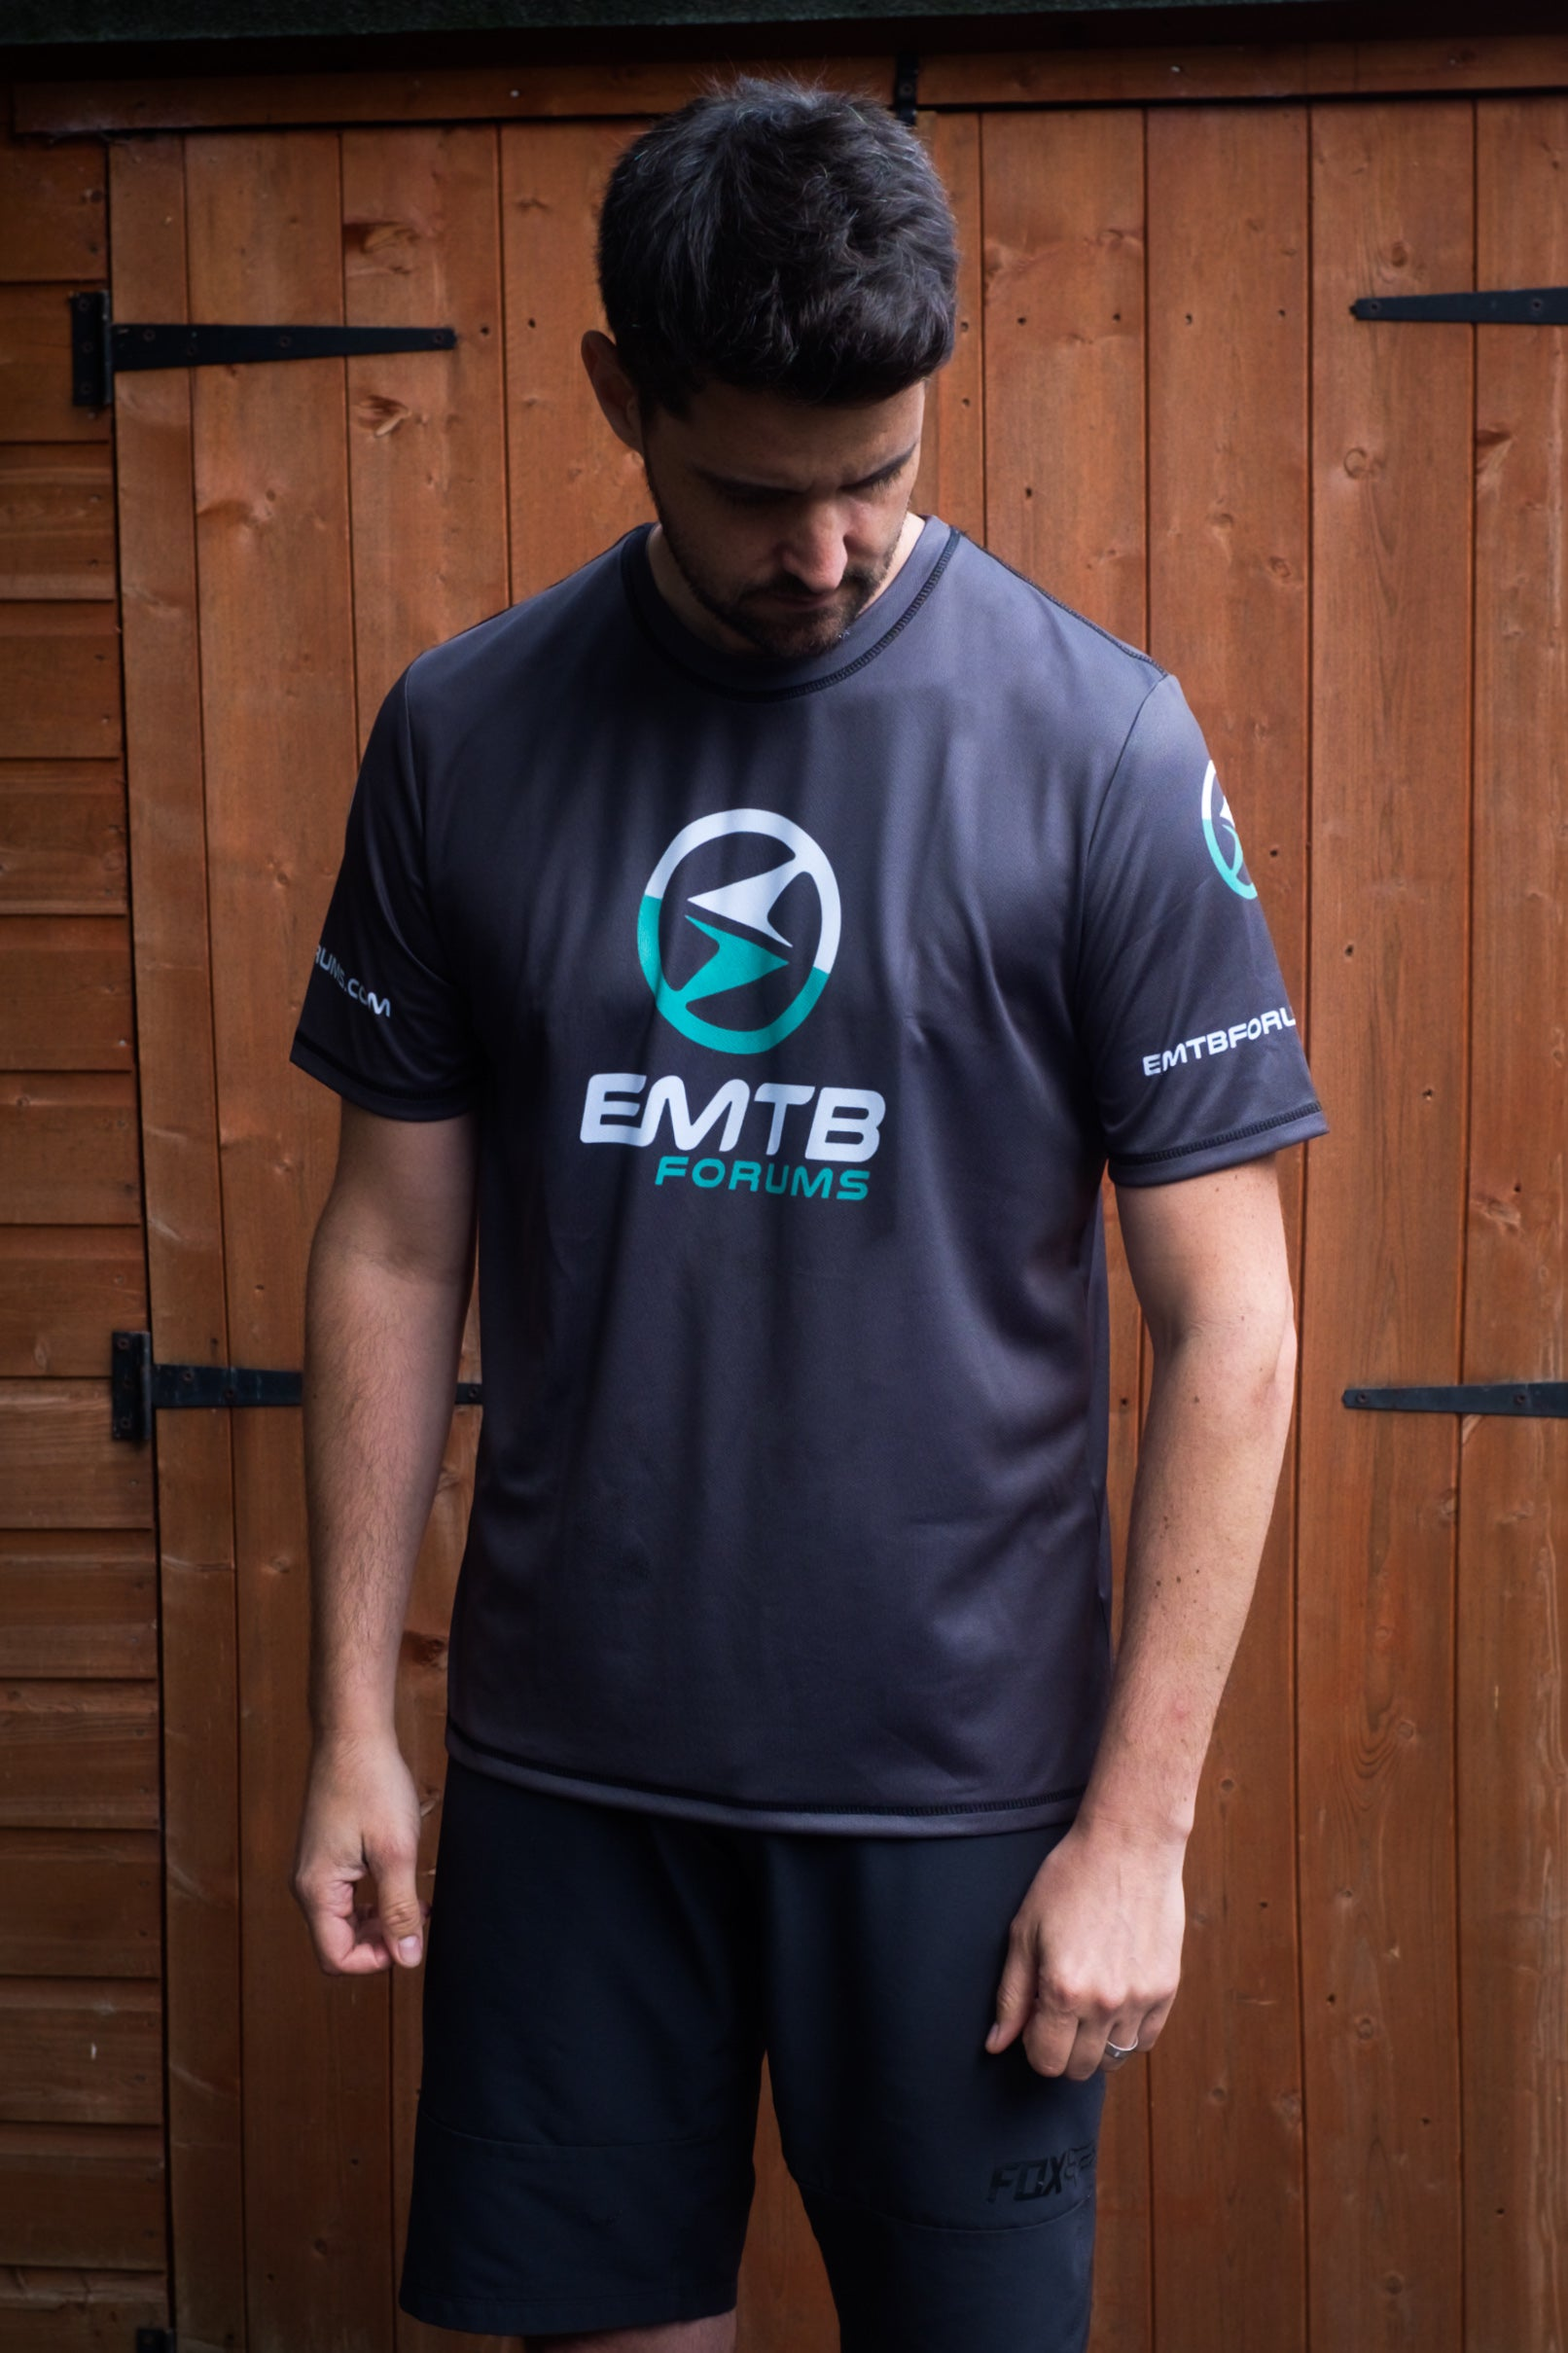 EMTB Tech Tee - ONLY SMALL LEFT!